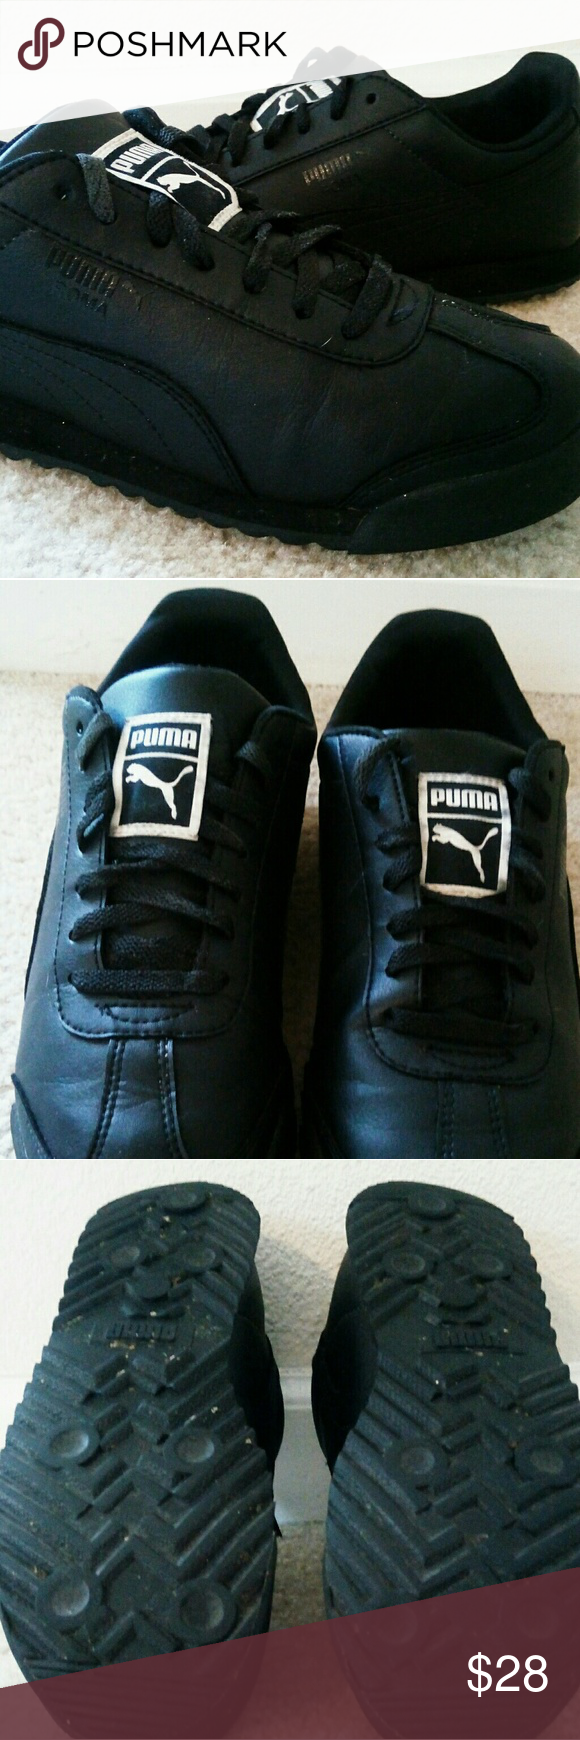 Shoes Roma Puma, gently worn. Puma Shoes Sneakers